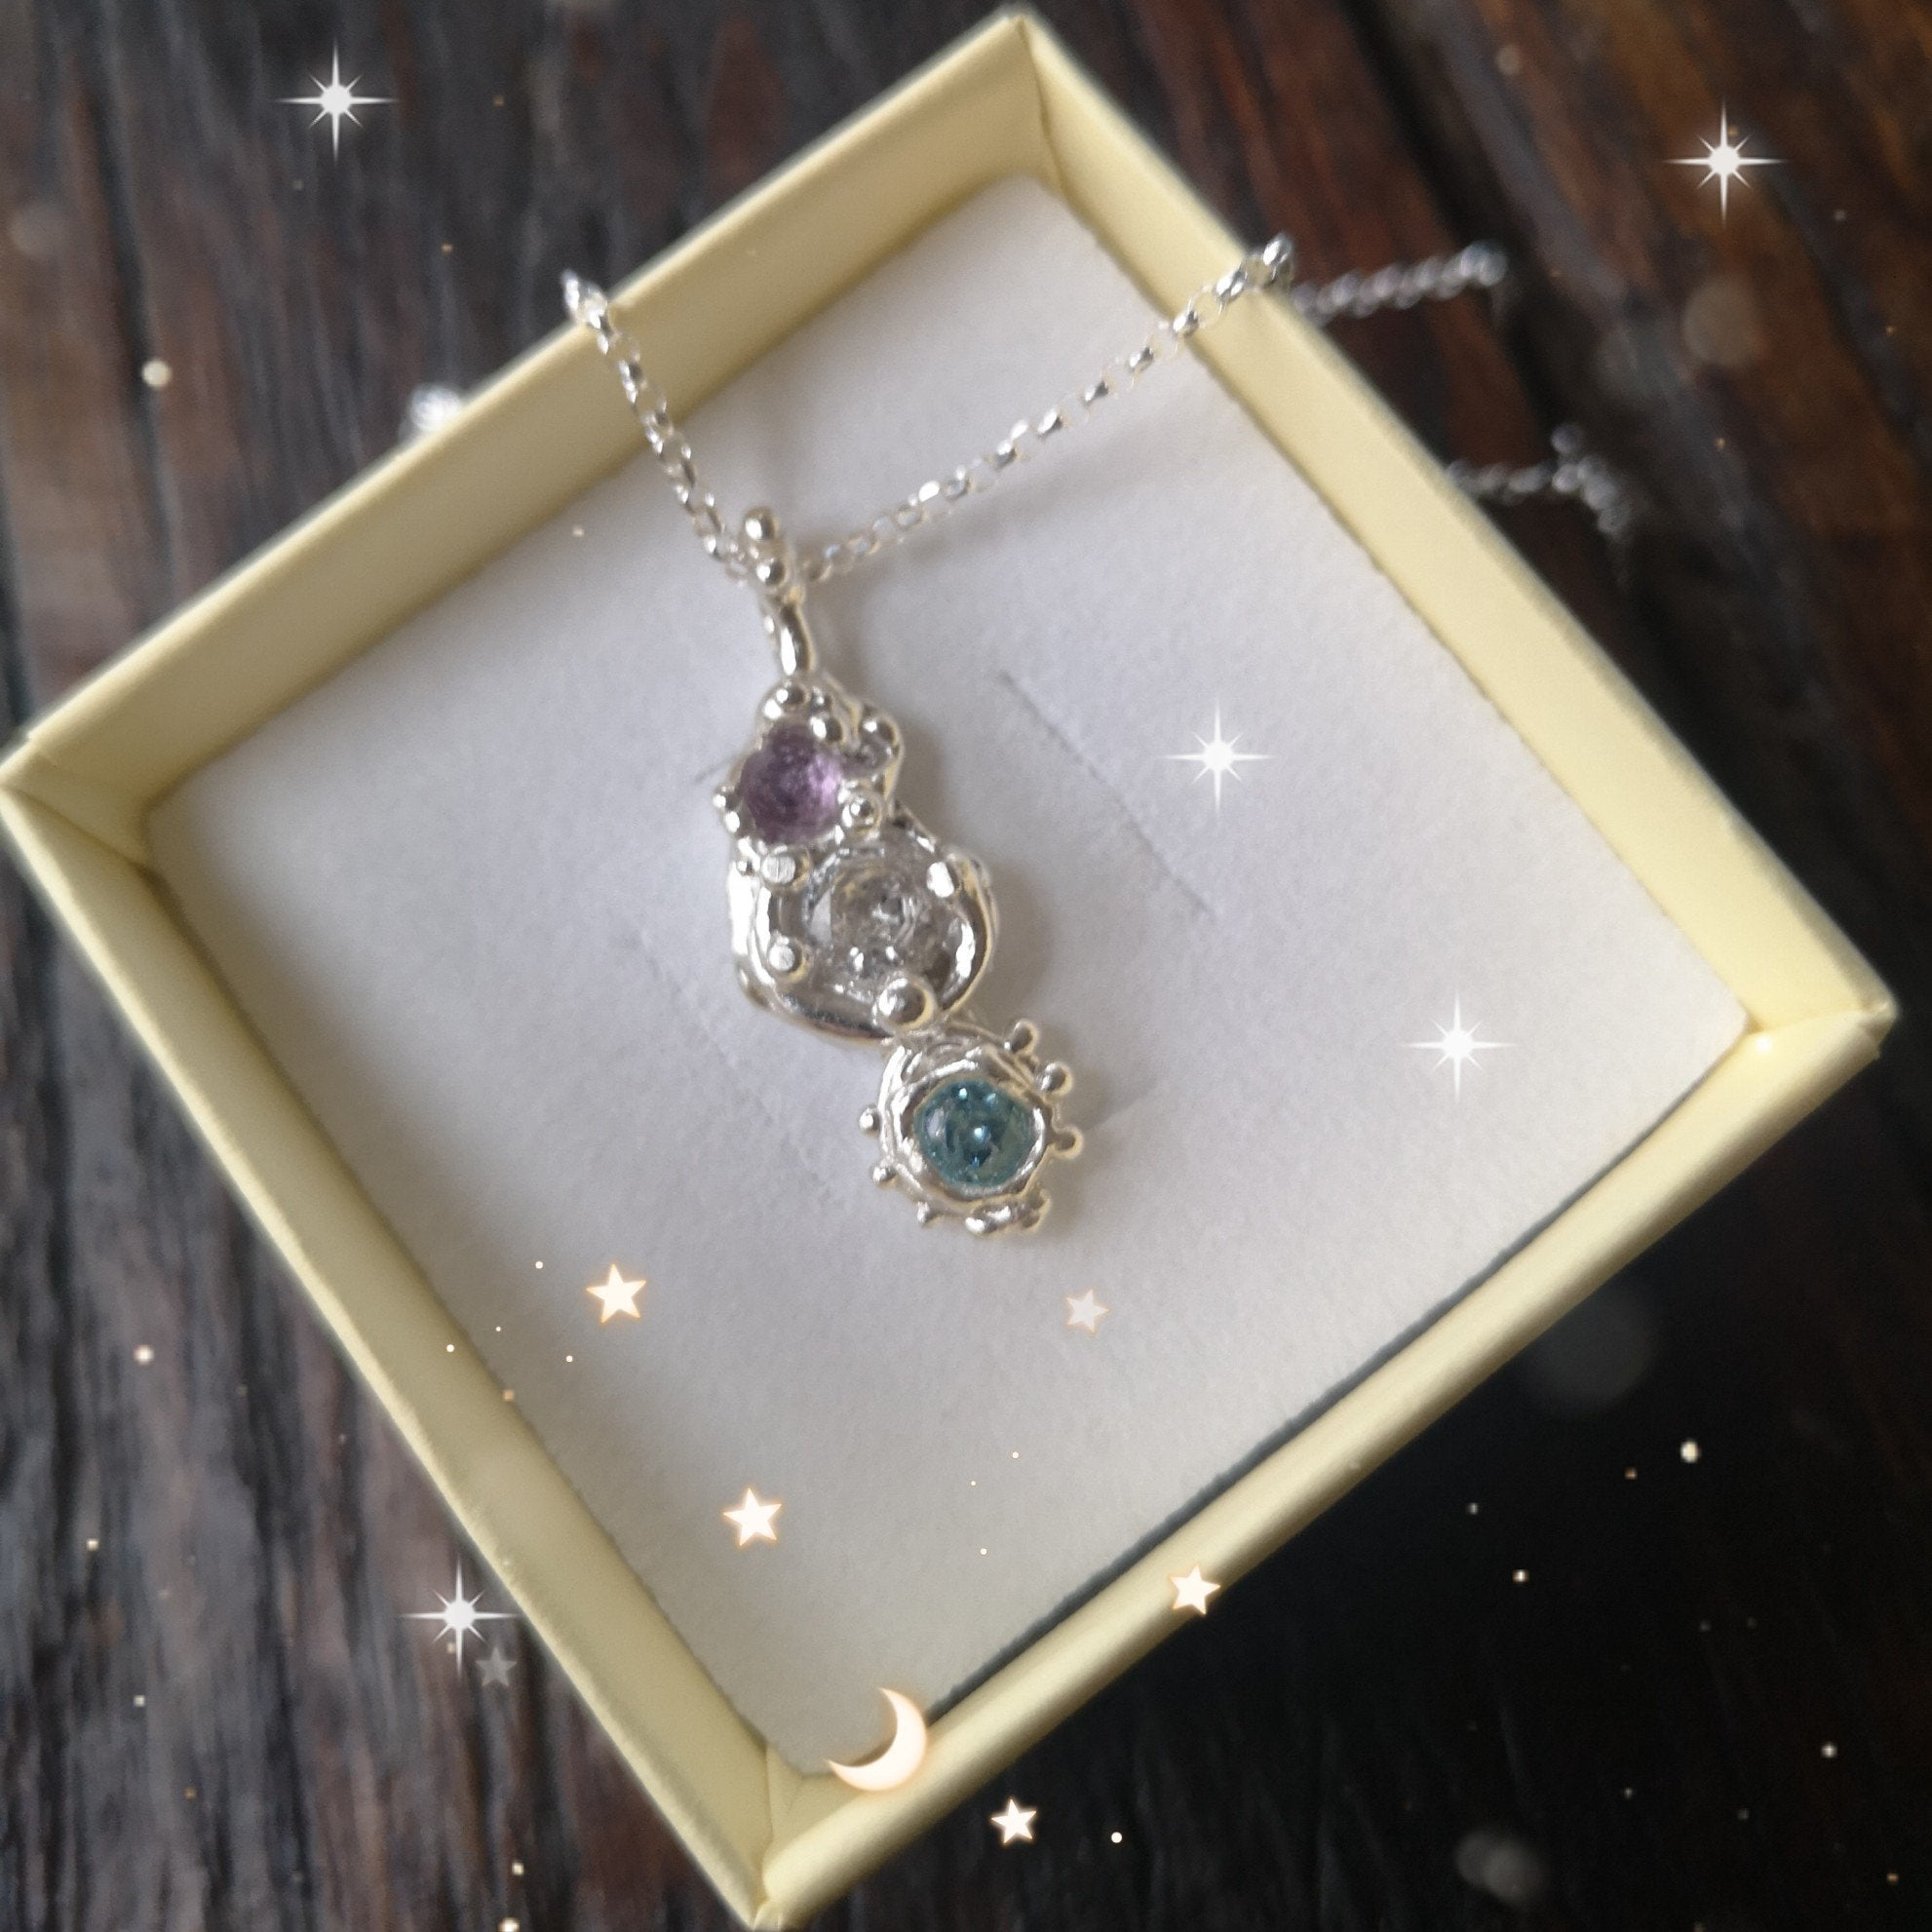 Mermaid's Dream Pendant